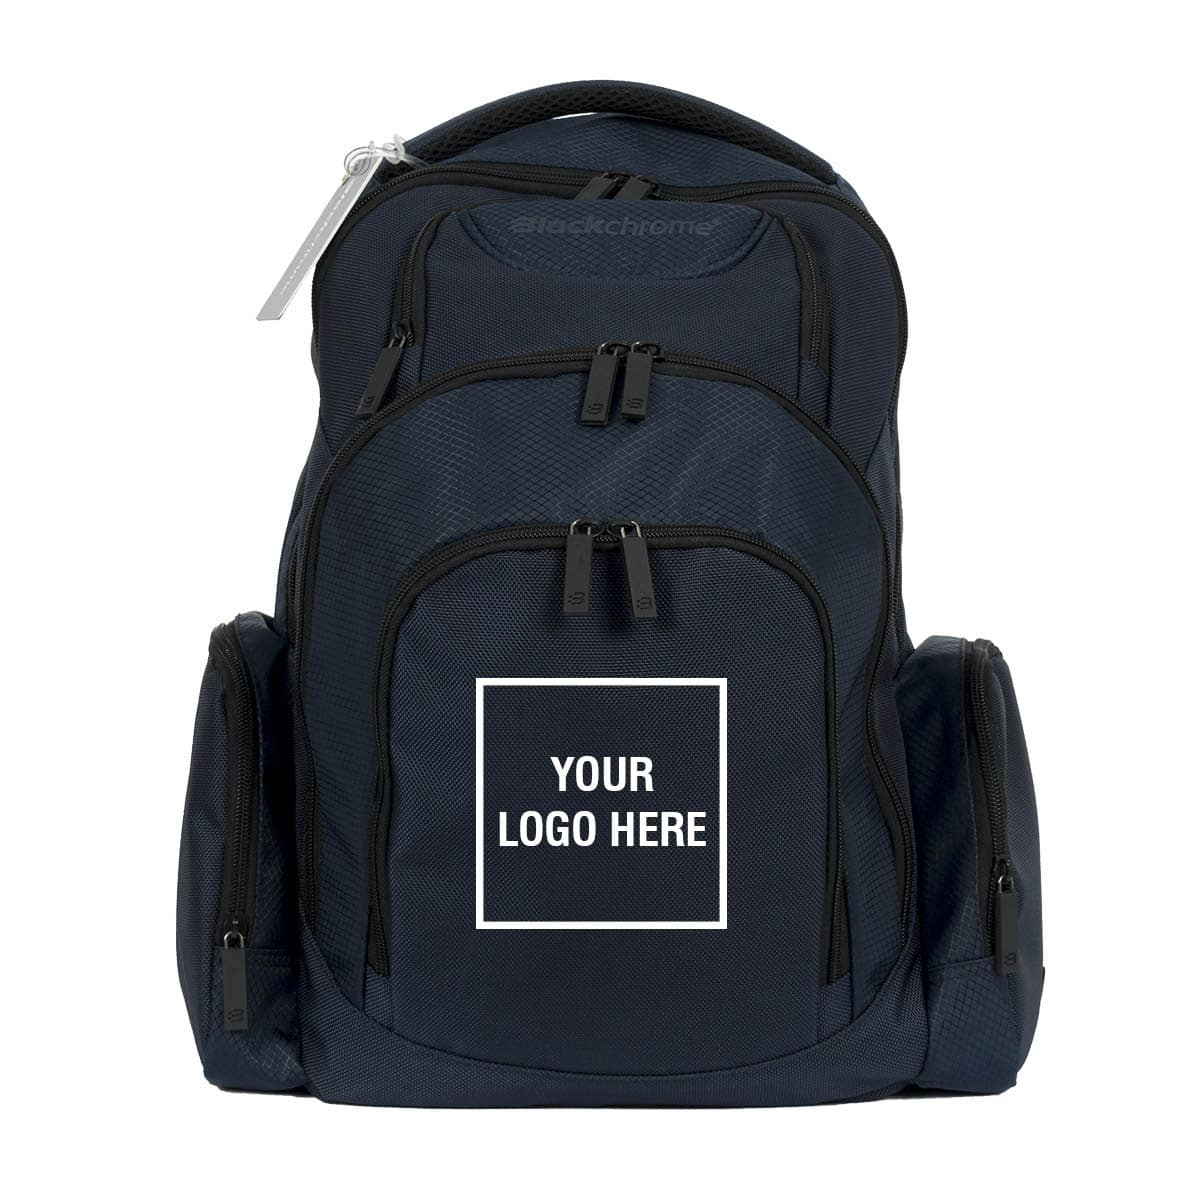 Elite Backpack - Navy - with custom logo option - front view